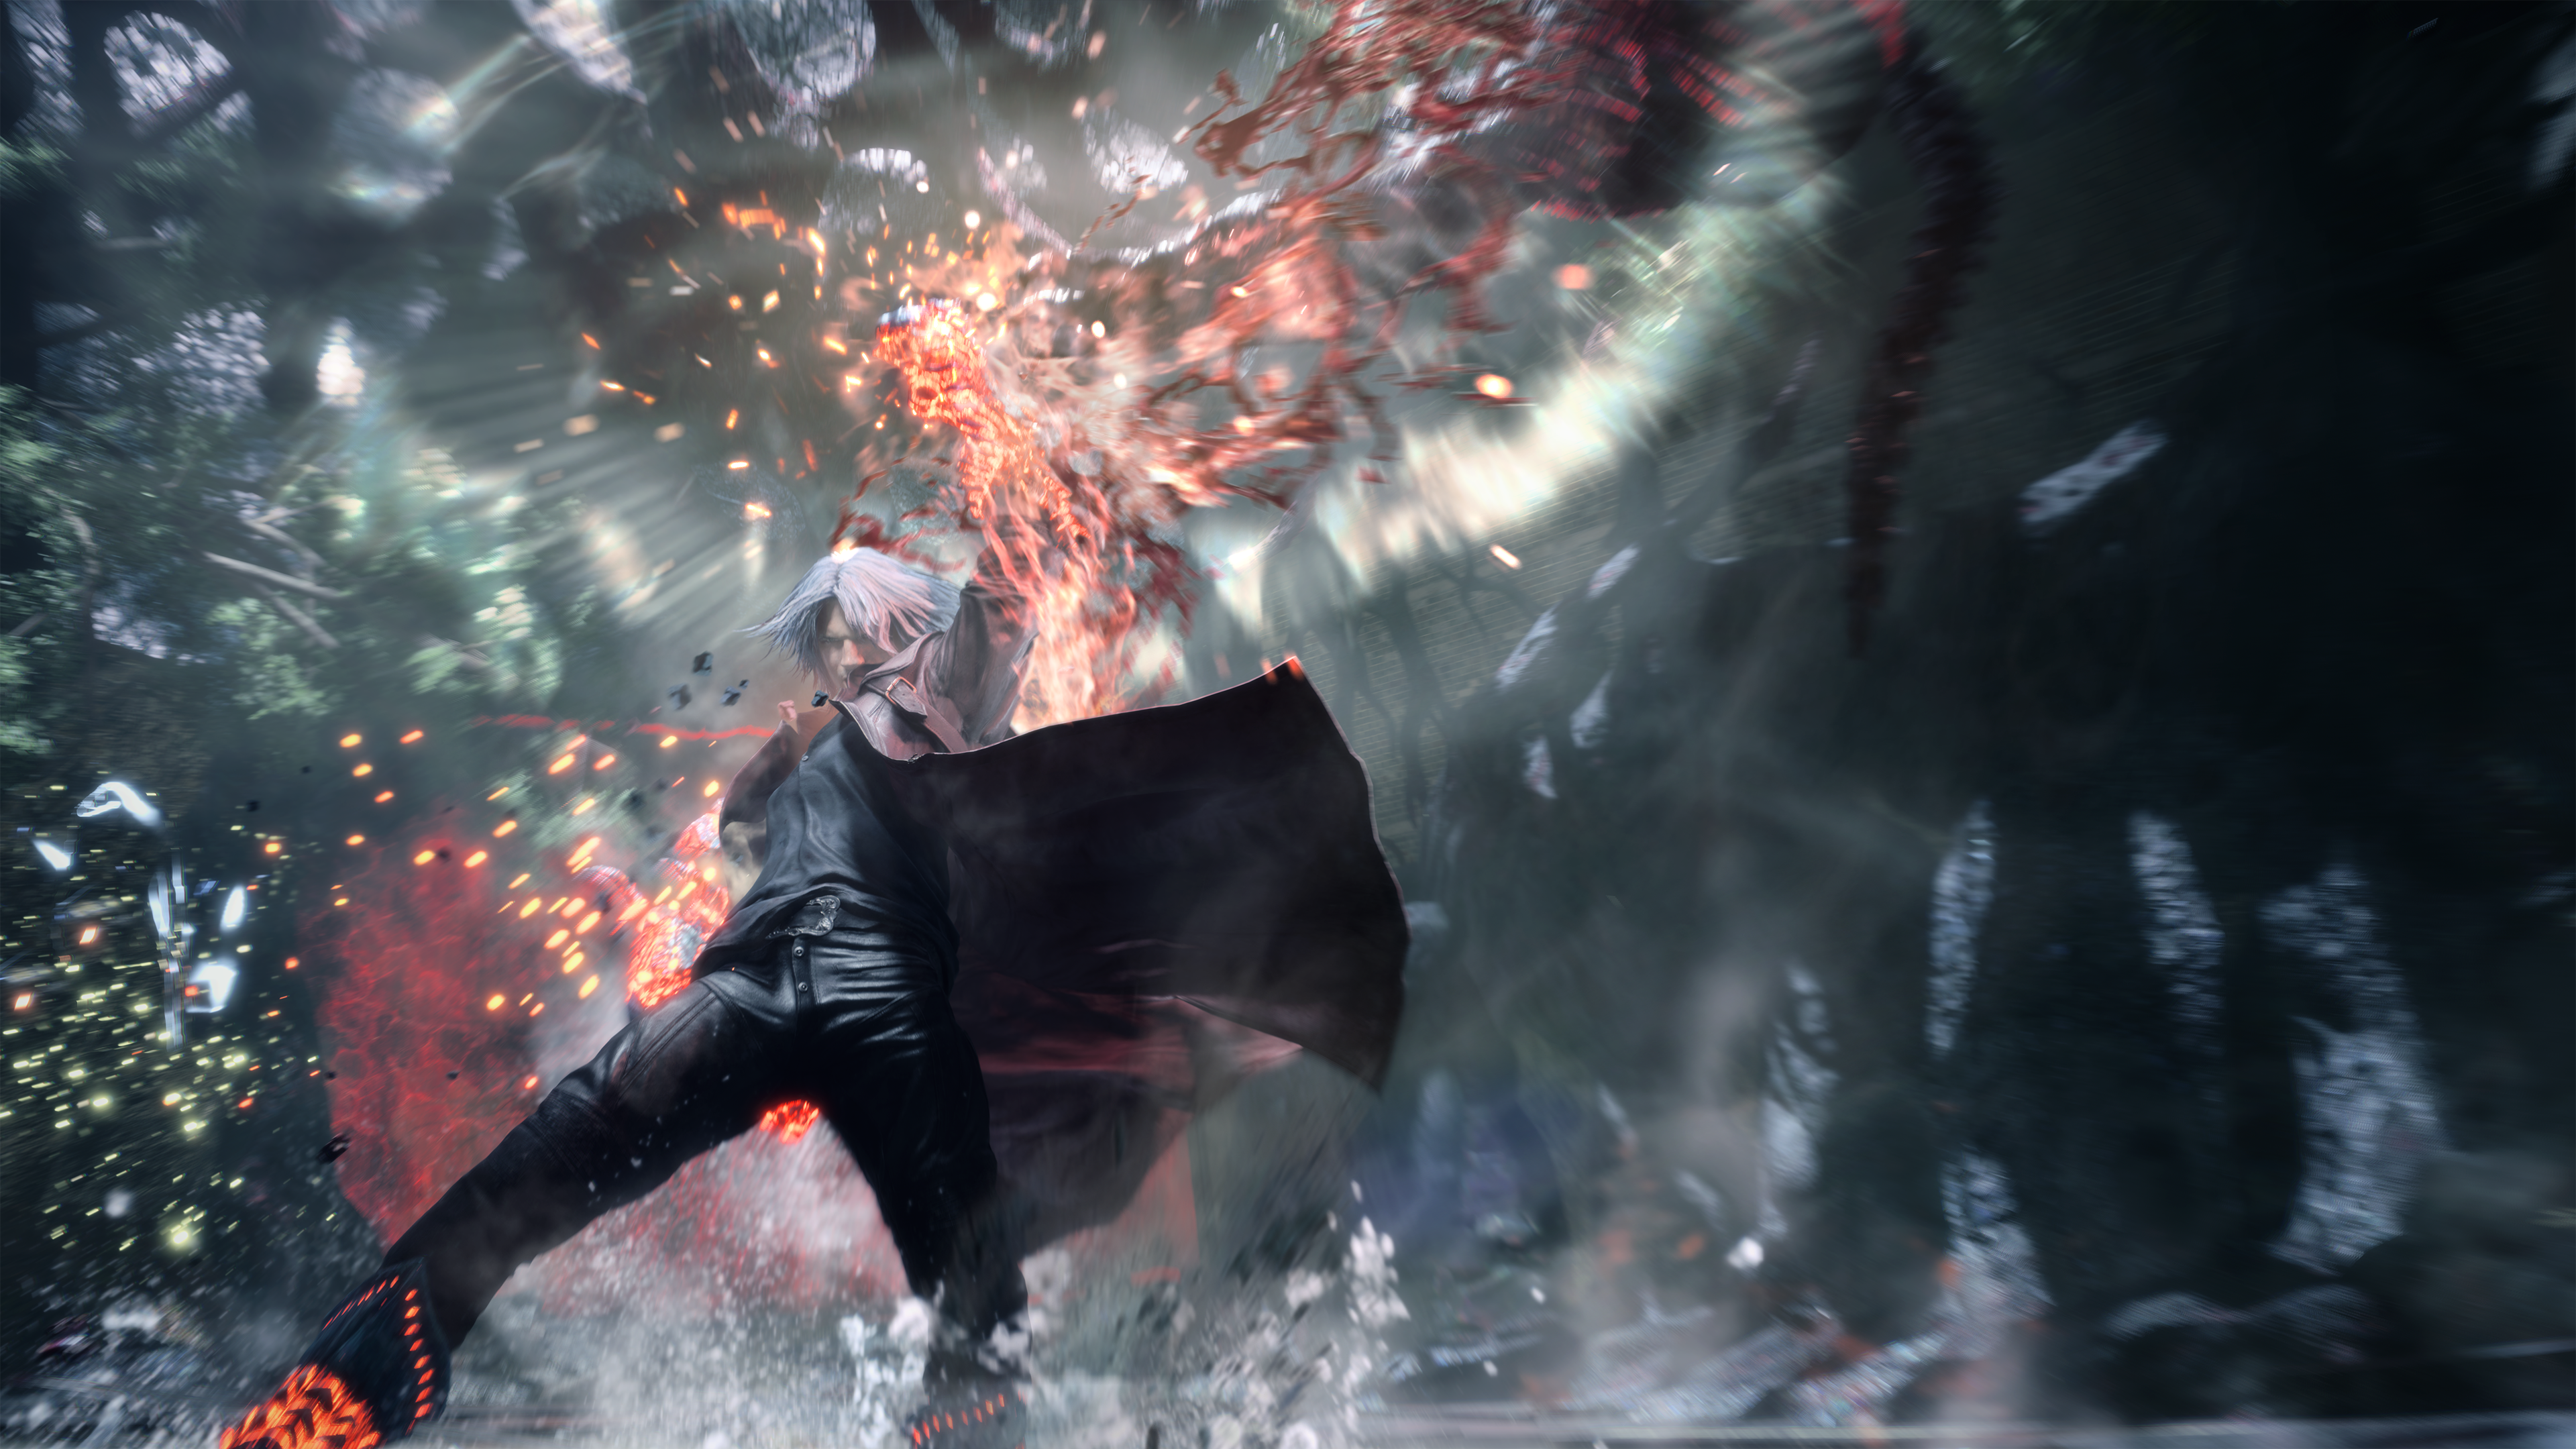 dmc5_screens_dante-balrog02